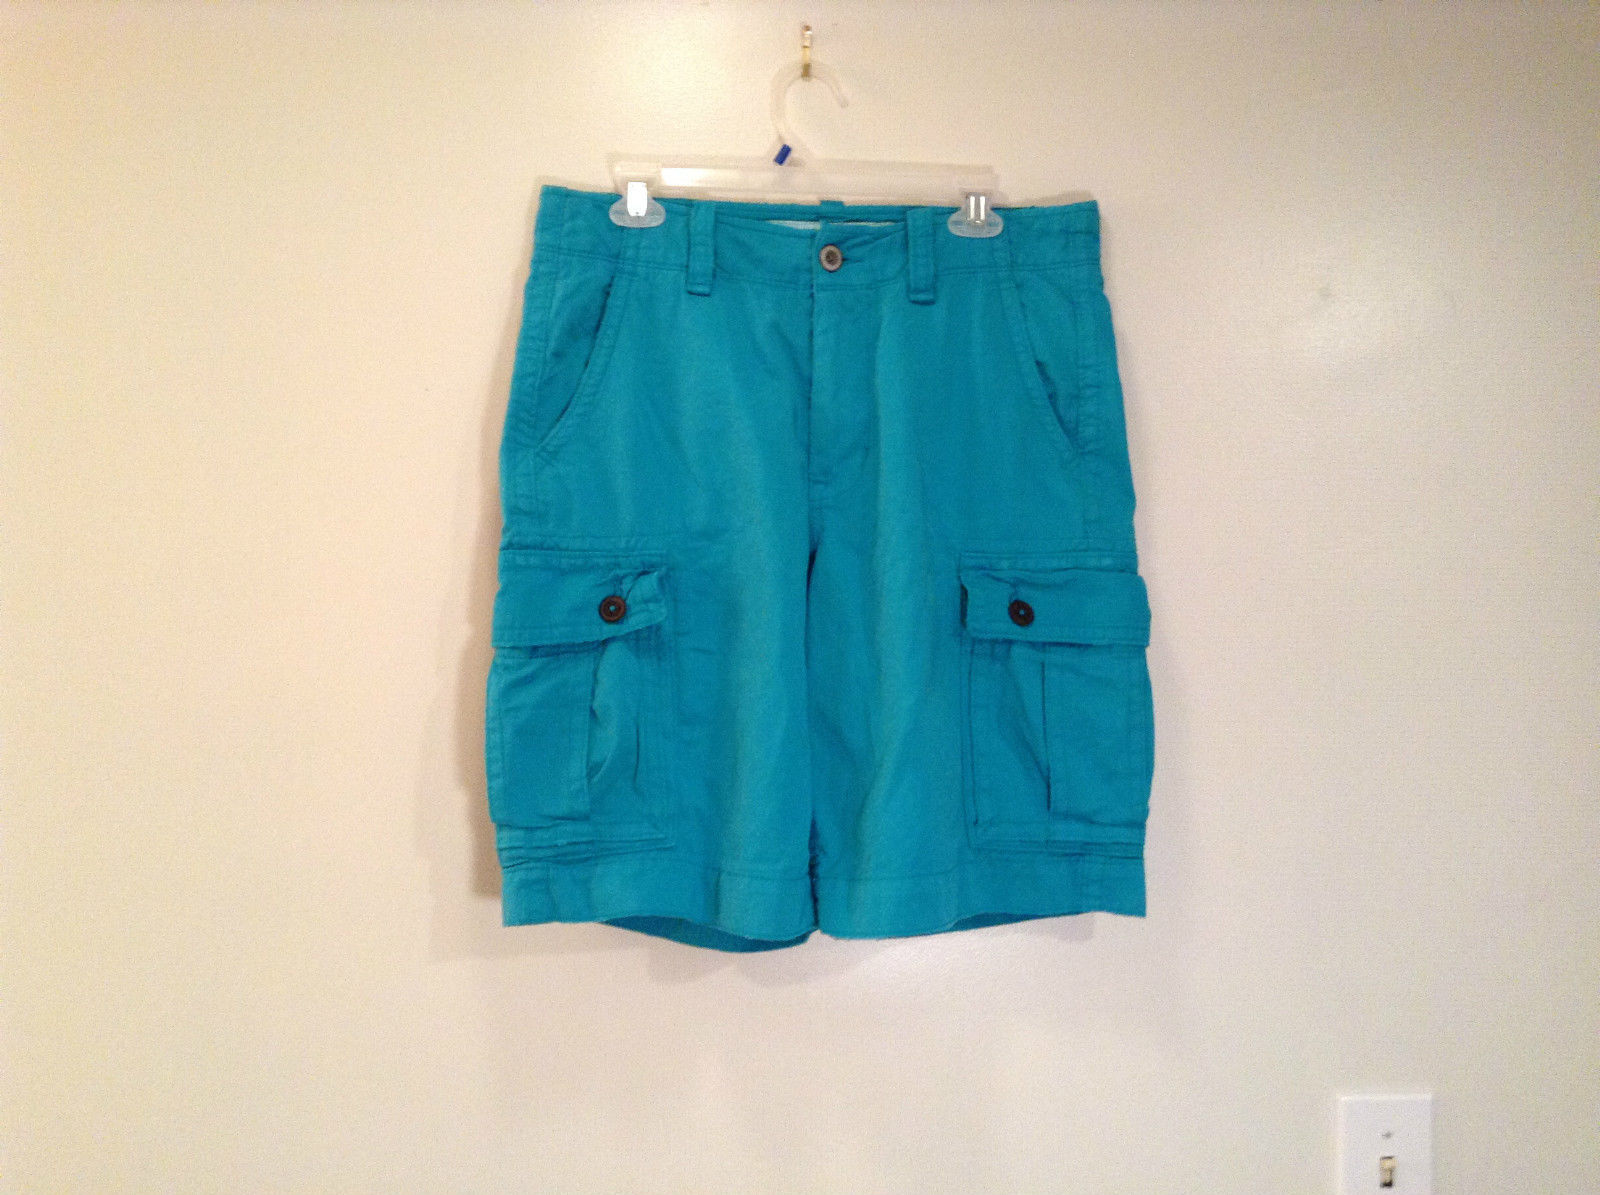 100 Percent Cotton American Eagle Outfitters Turquoise Shorts Sizes 31